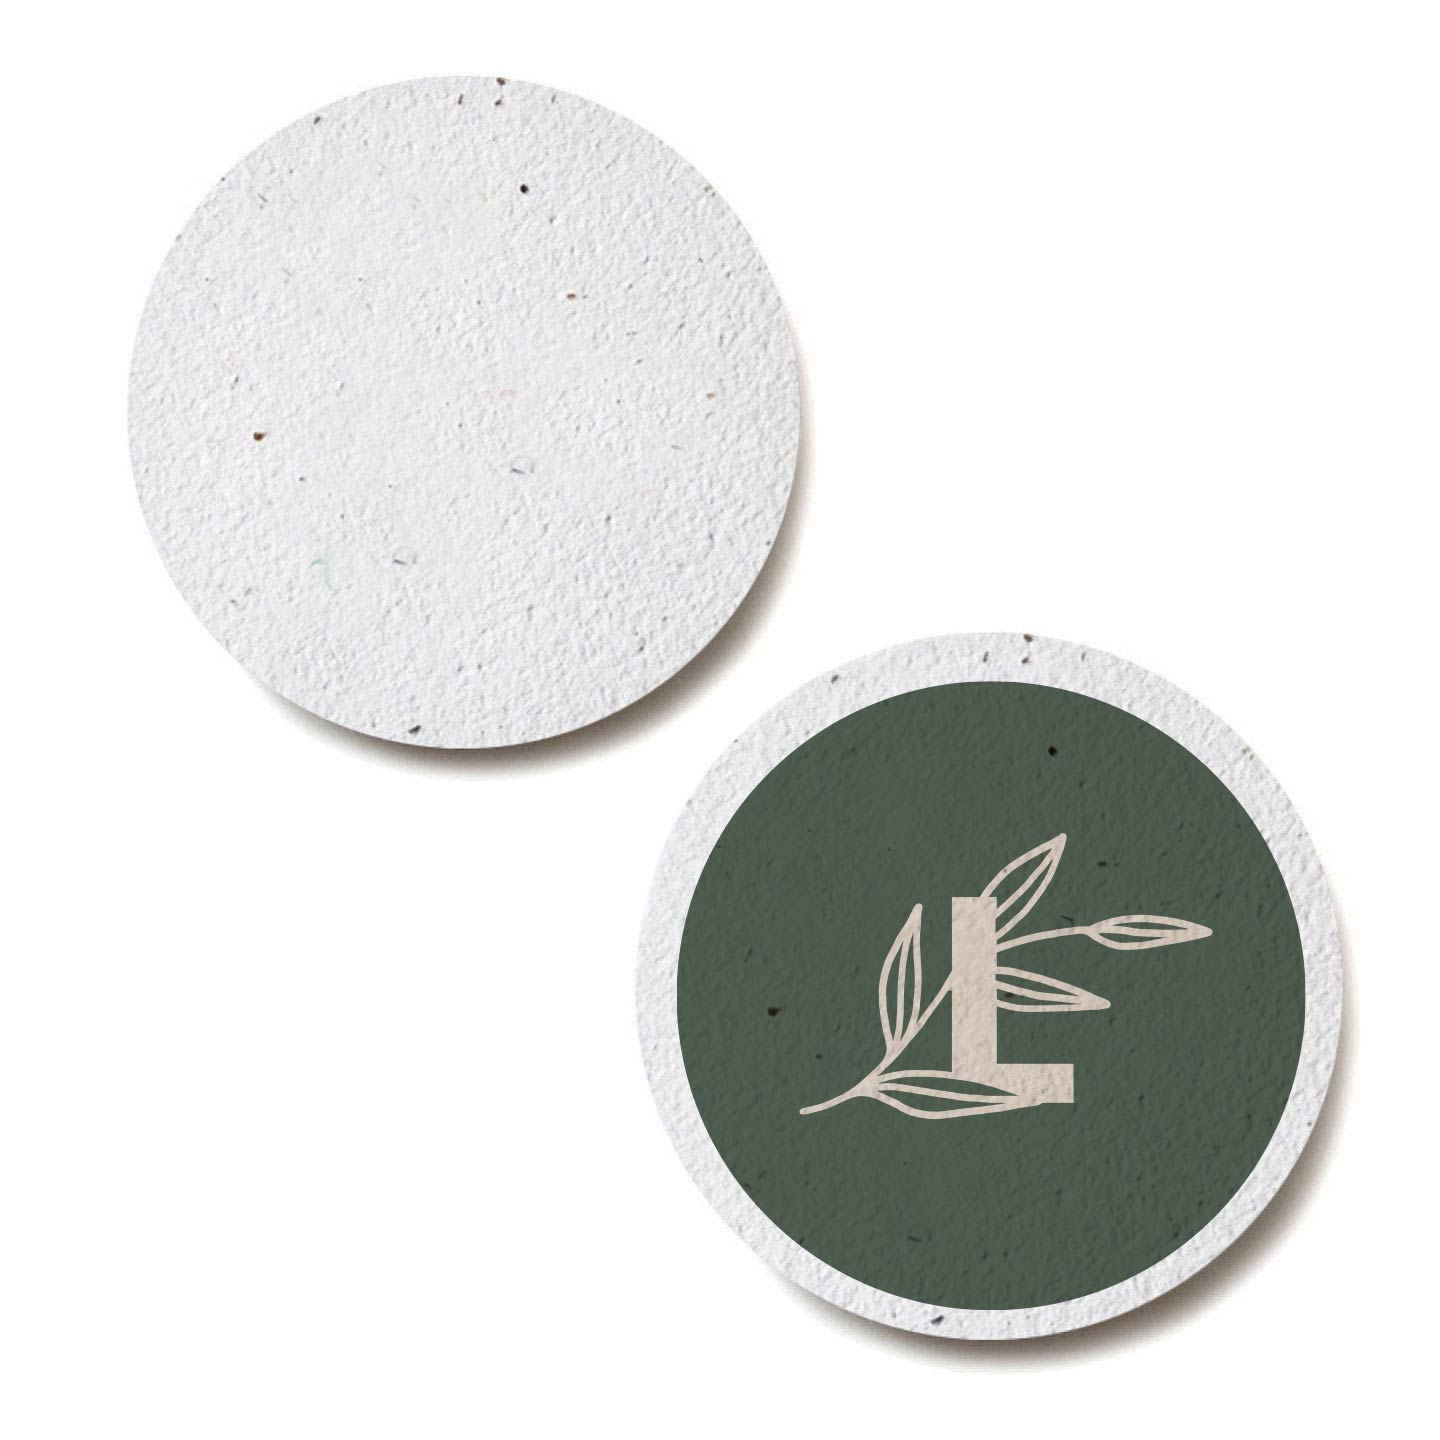 287077 plantable seed paper coaster round full color process one side